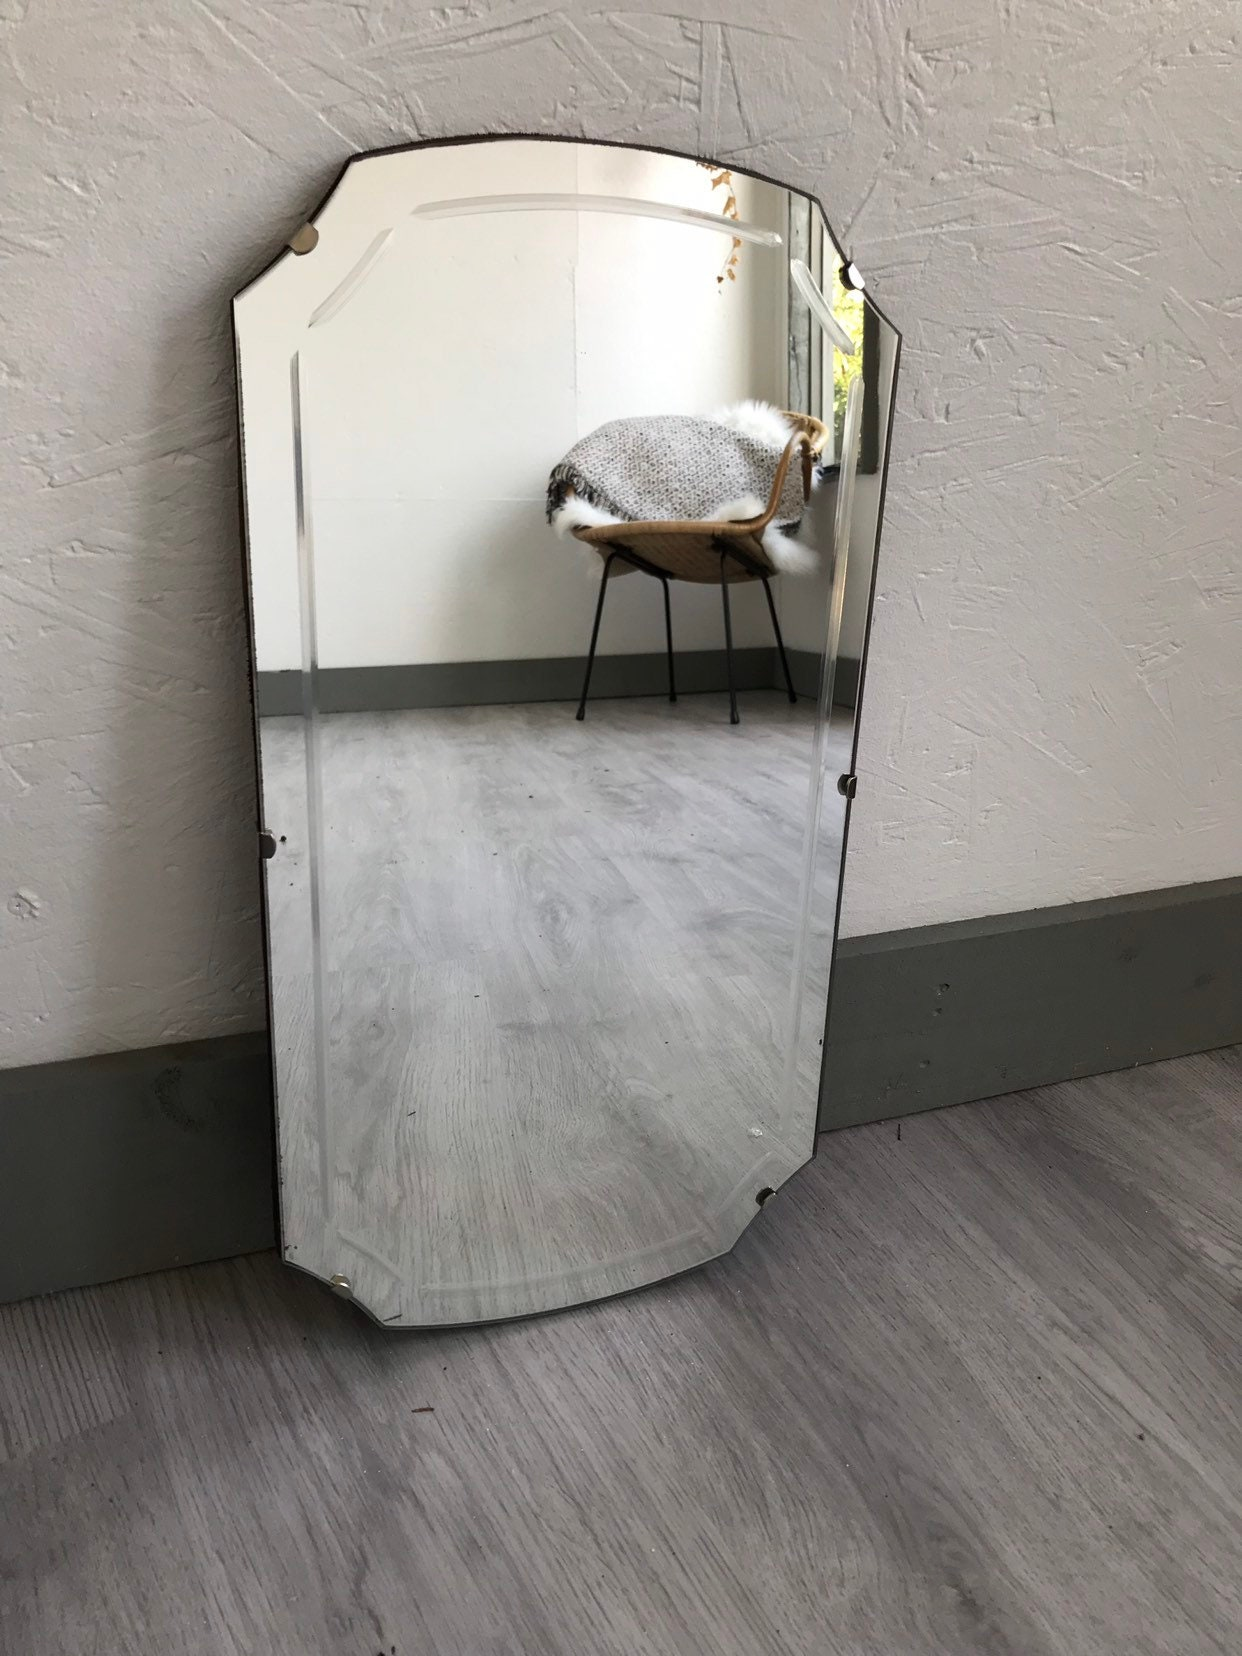 Lovely Art Deco Style Morror Vibtage Looking Etched Mirror